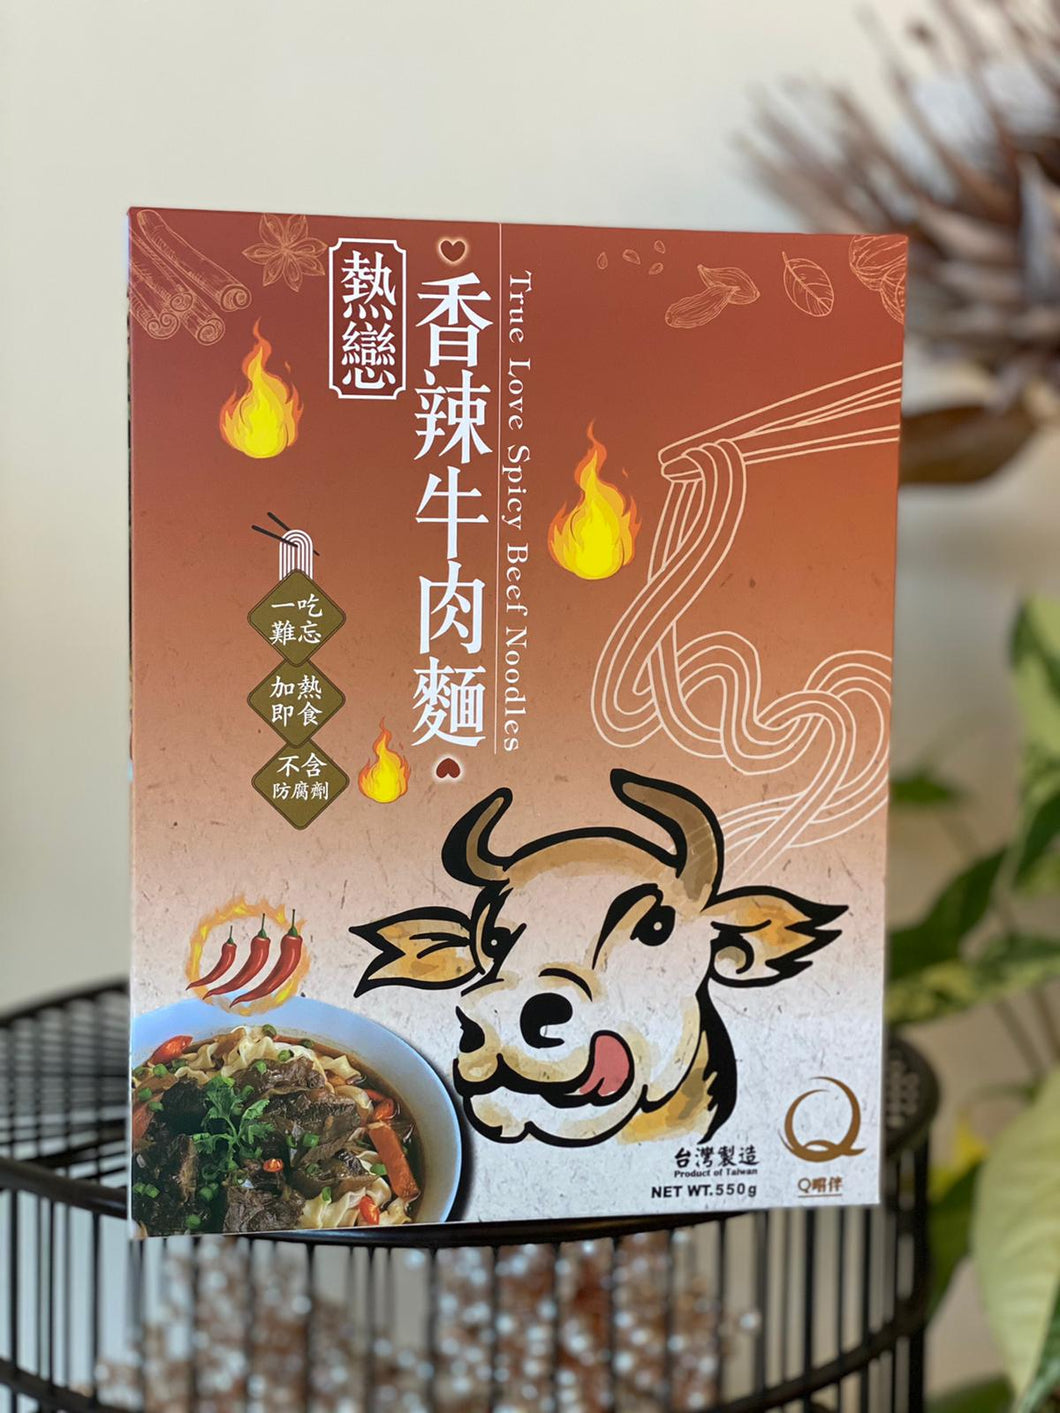 熱戀香辣牛肉麵 True Love Spicy Beef Noodles